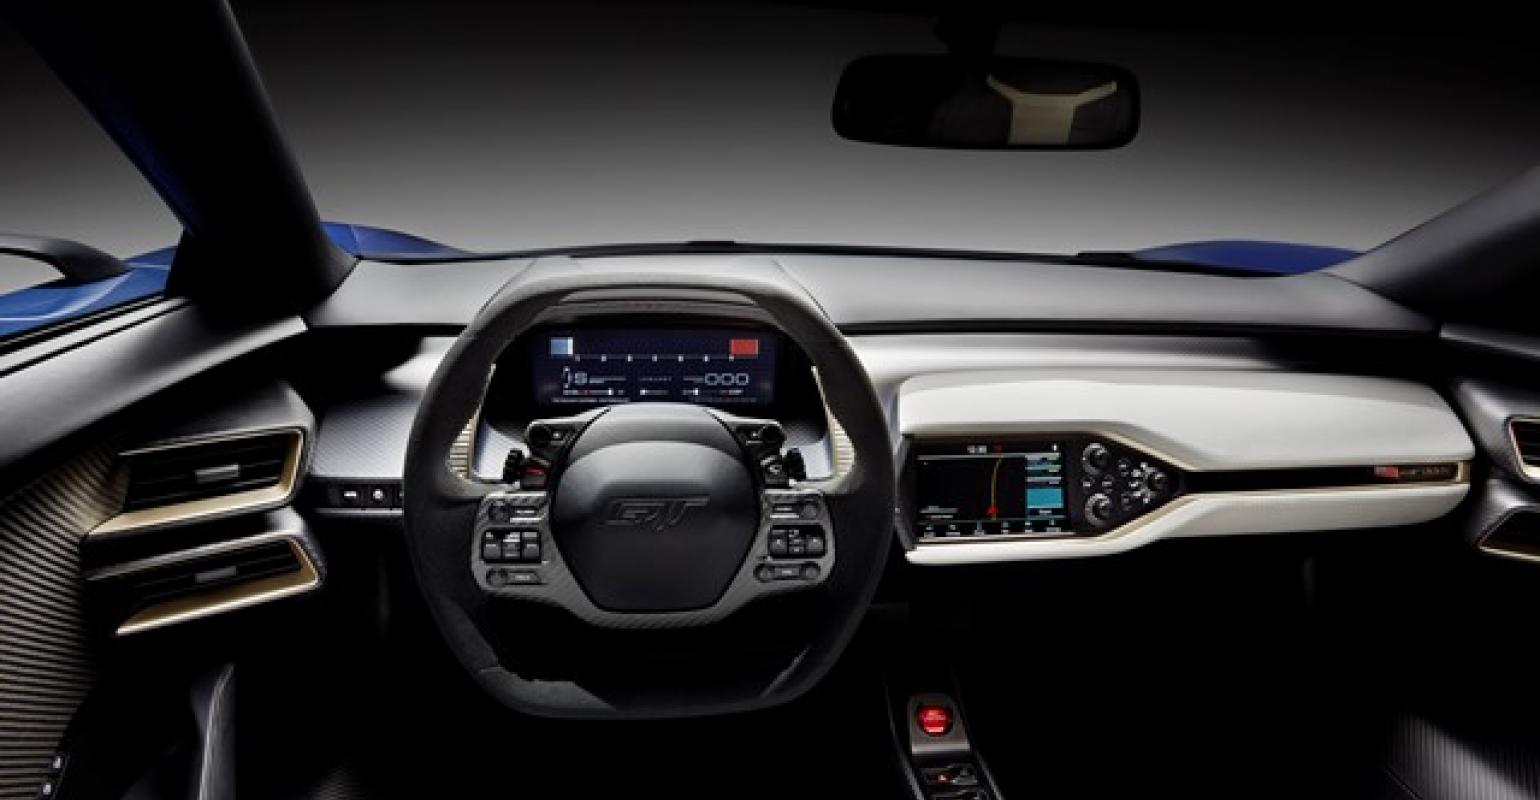 Ford Gt Interior Designed To Convey Lightness And Connection To Motorsports